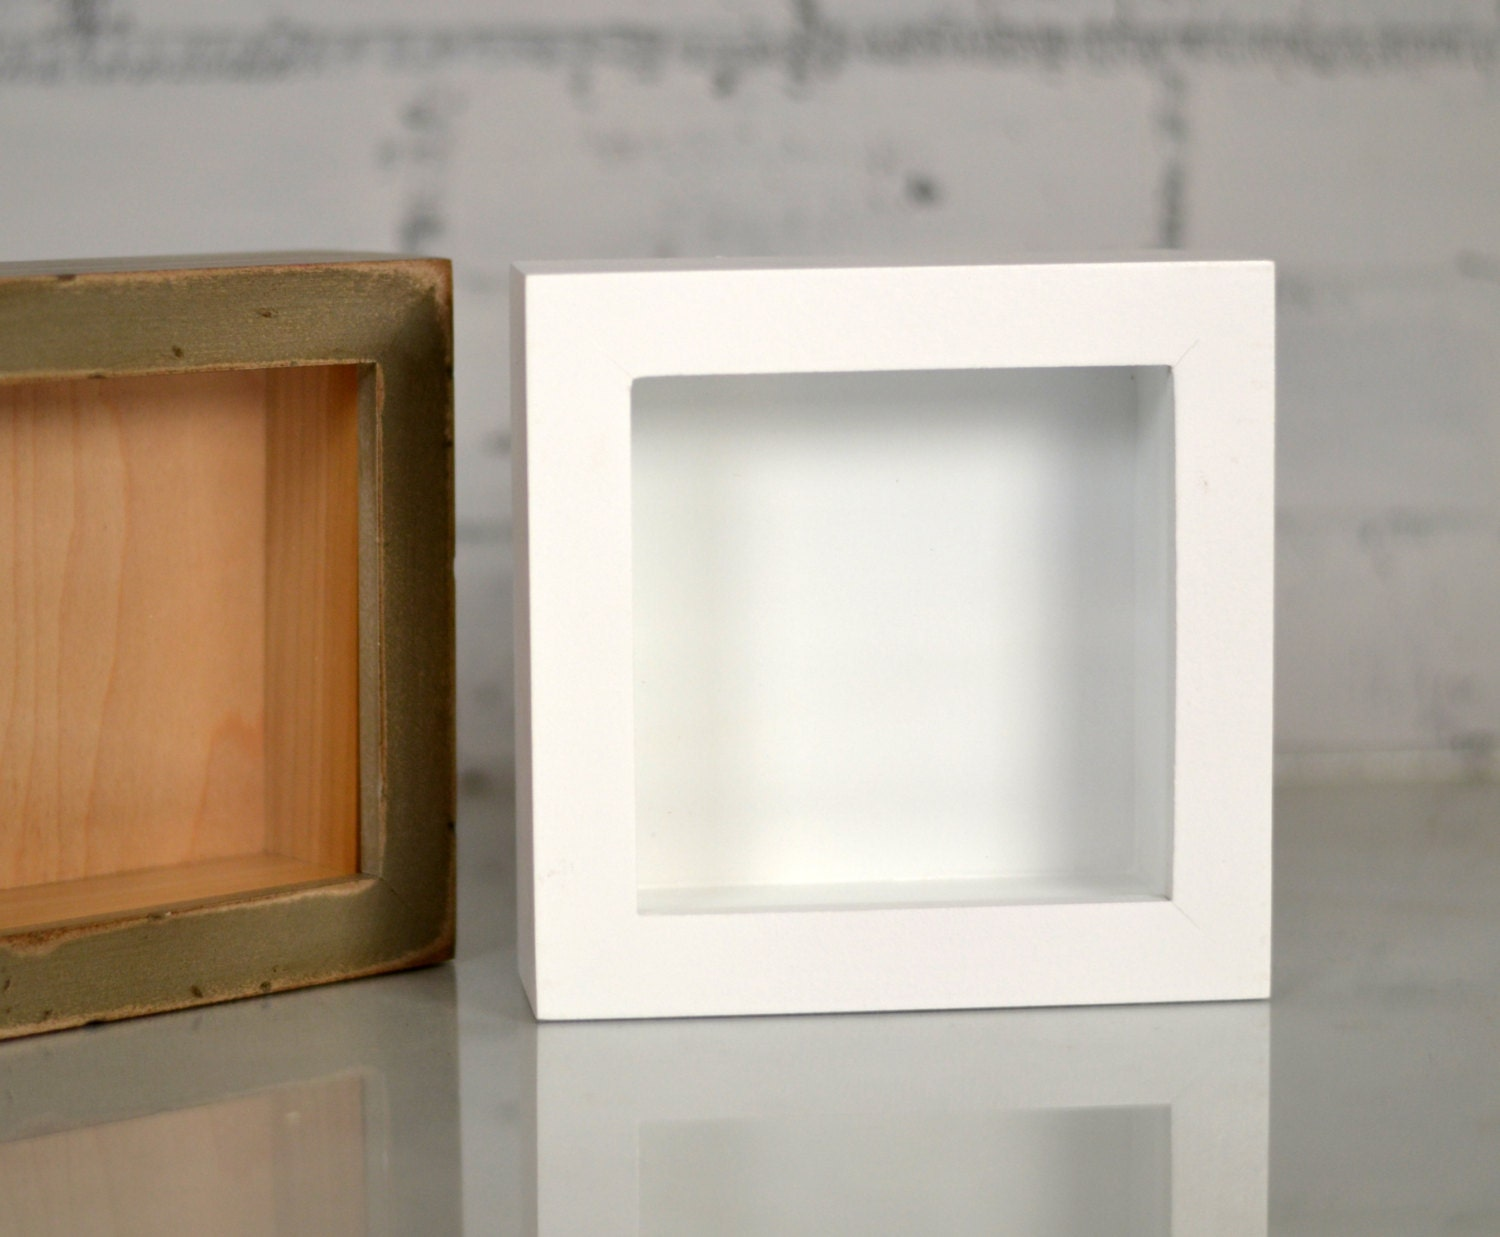 22 By 28 Frame White: Handmade Small Square Shadow Box Frame